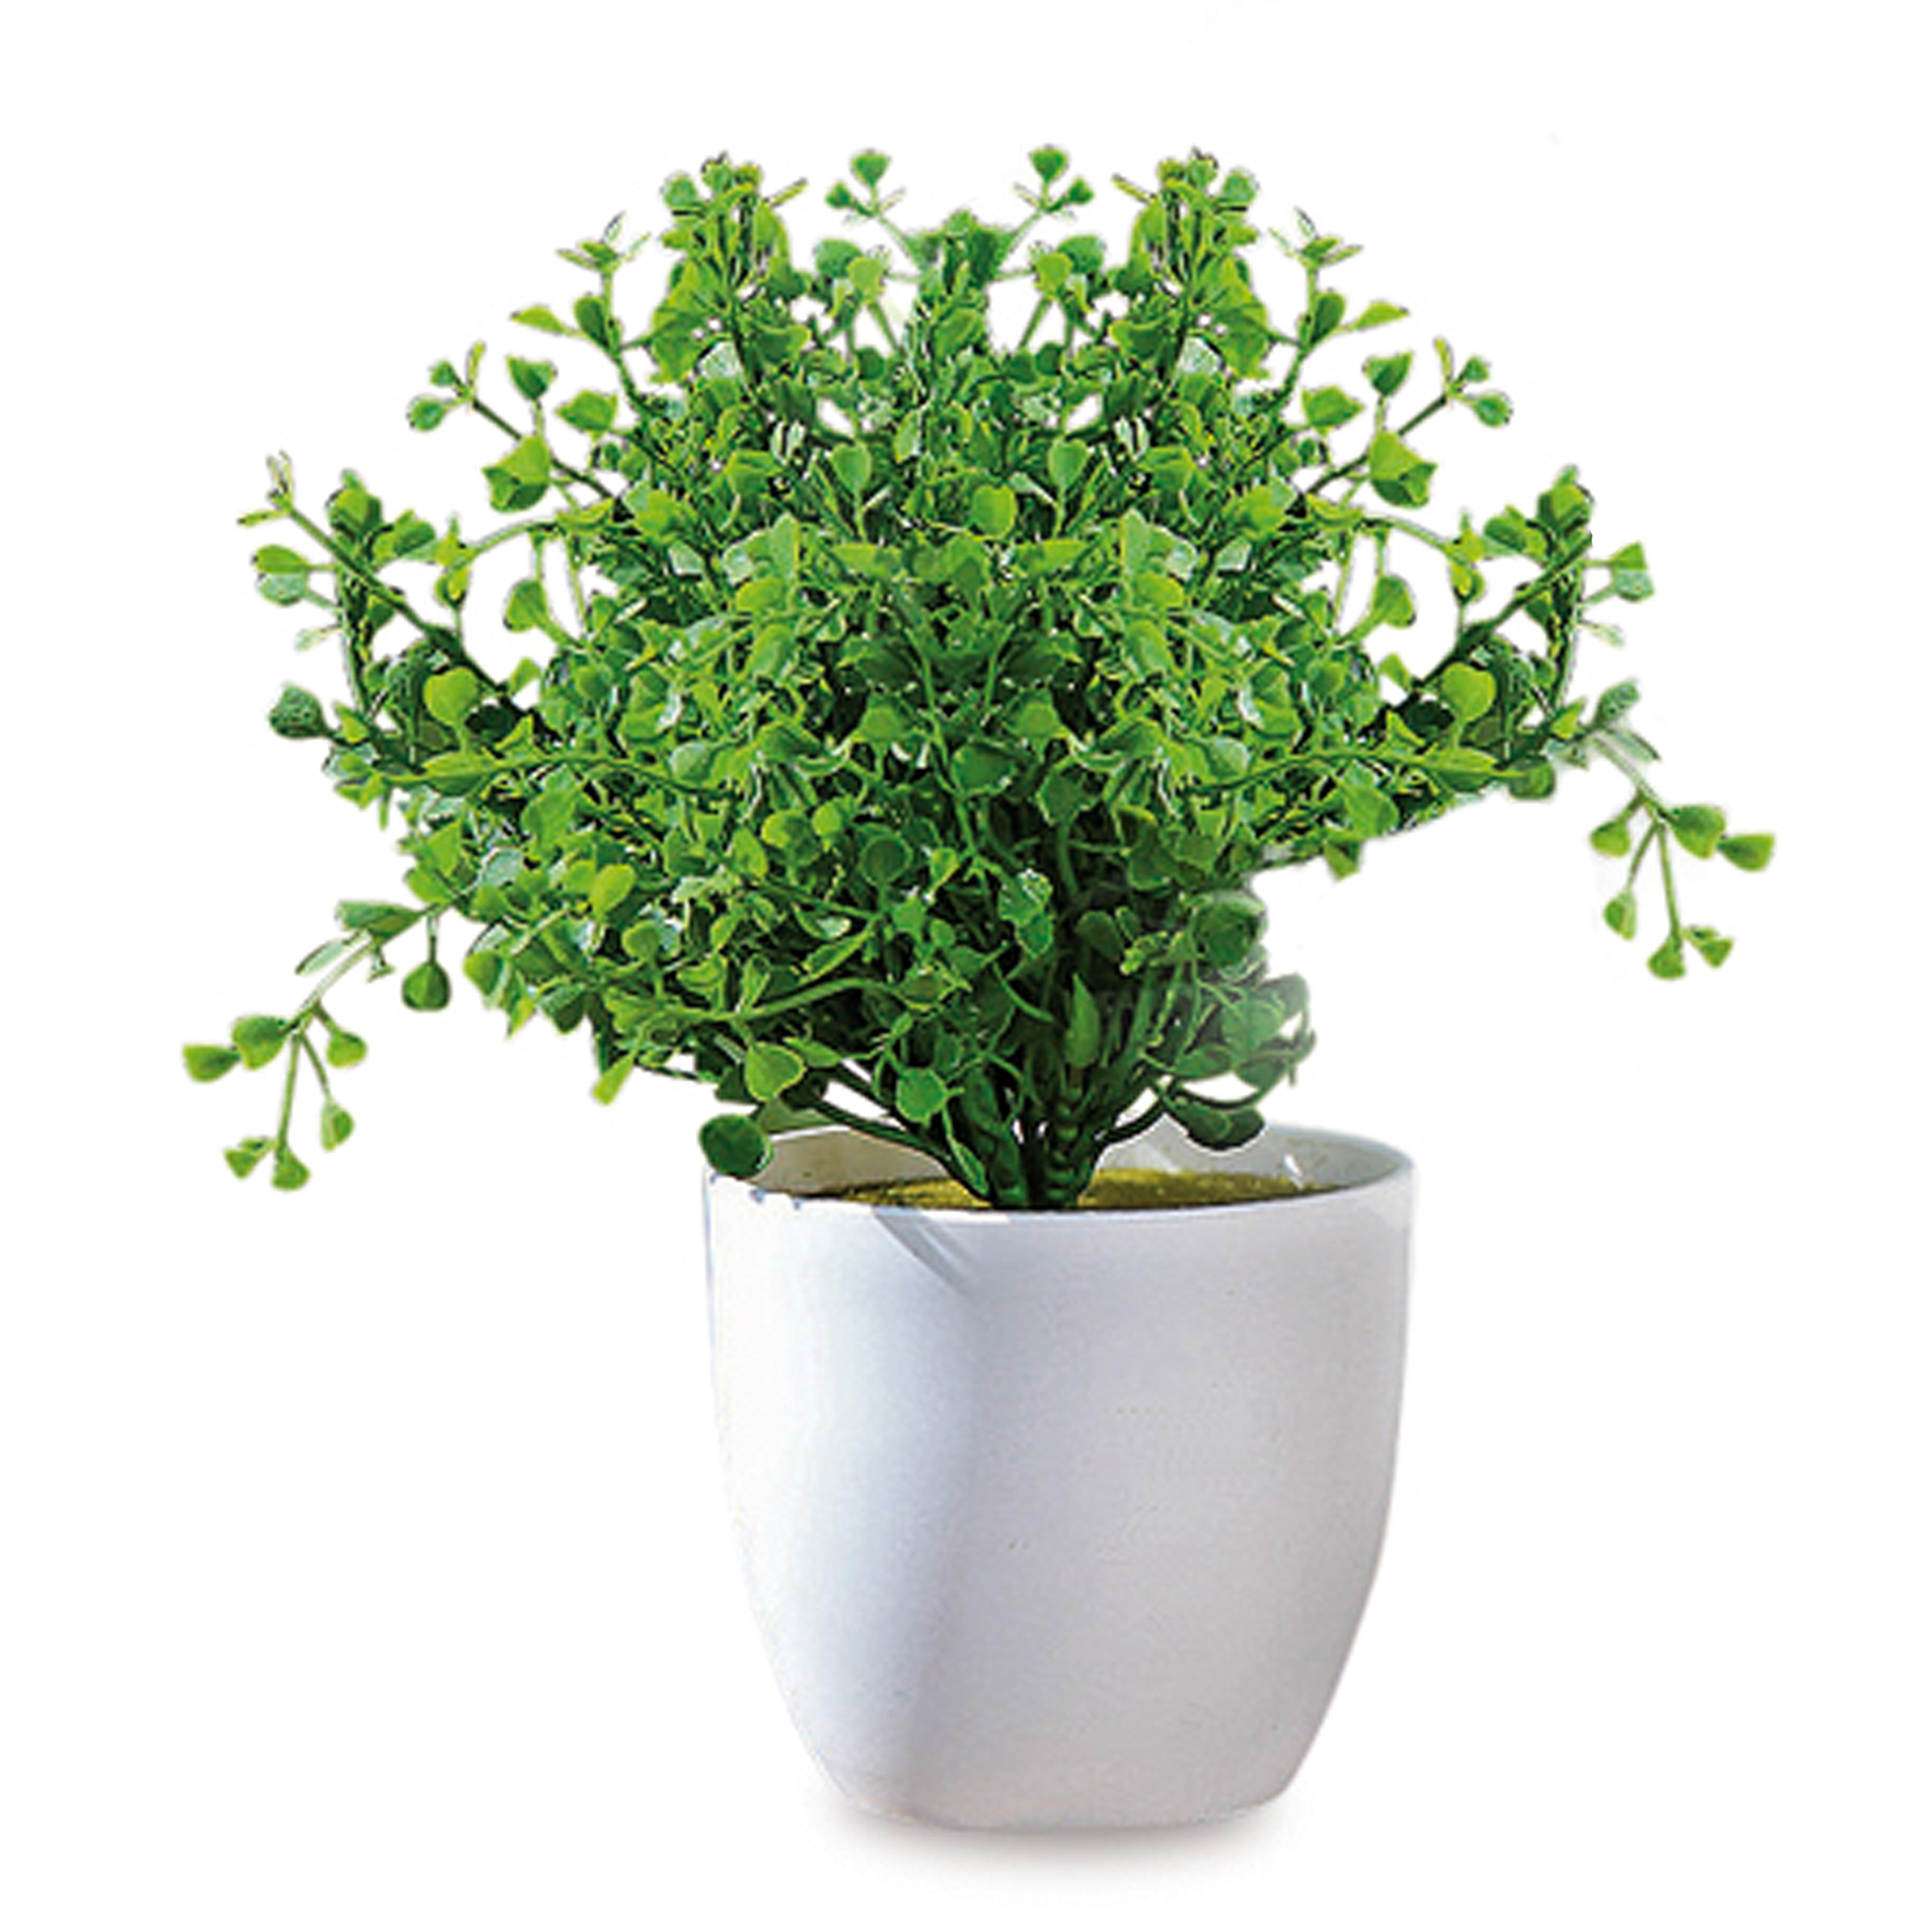 Realistic Faux Baby Oregano, Potted Plant, Houseplant, Kitchen, Lushly Leafed, White Pot, 6 inches Diameter x 9 3/4 Tall WHW by Whole House Worlds